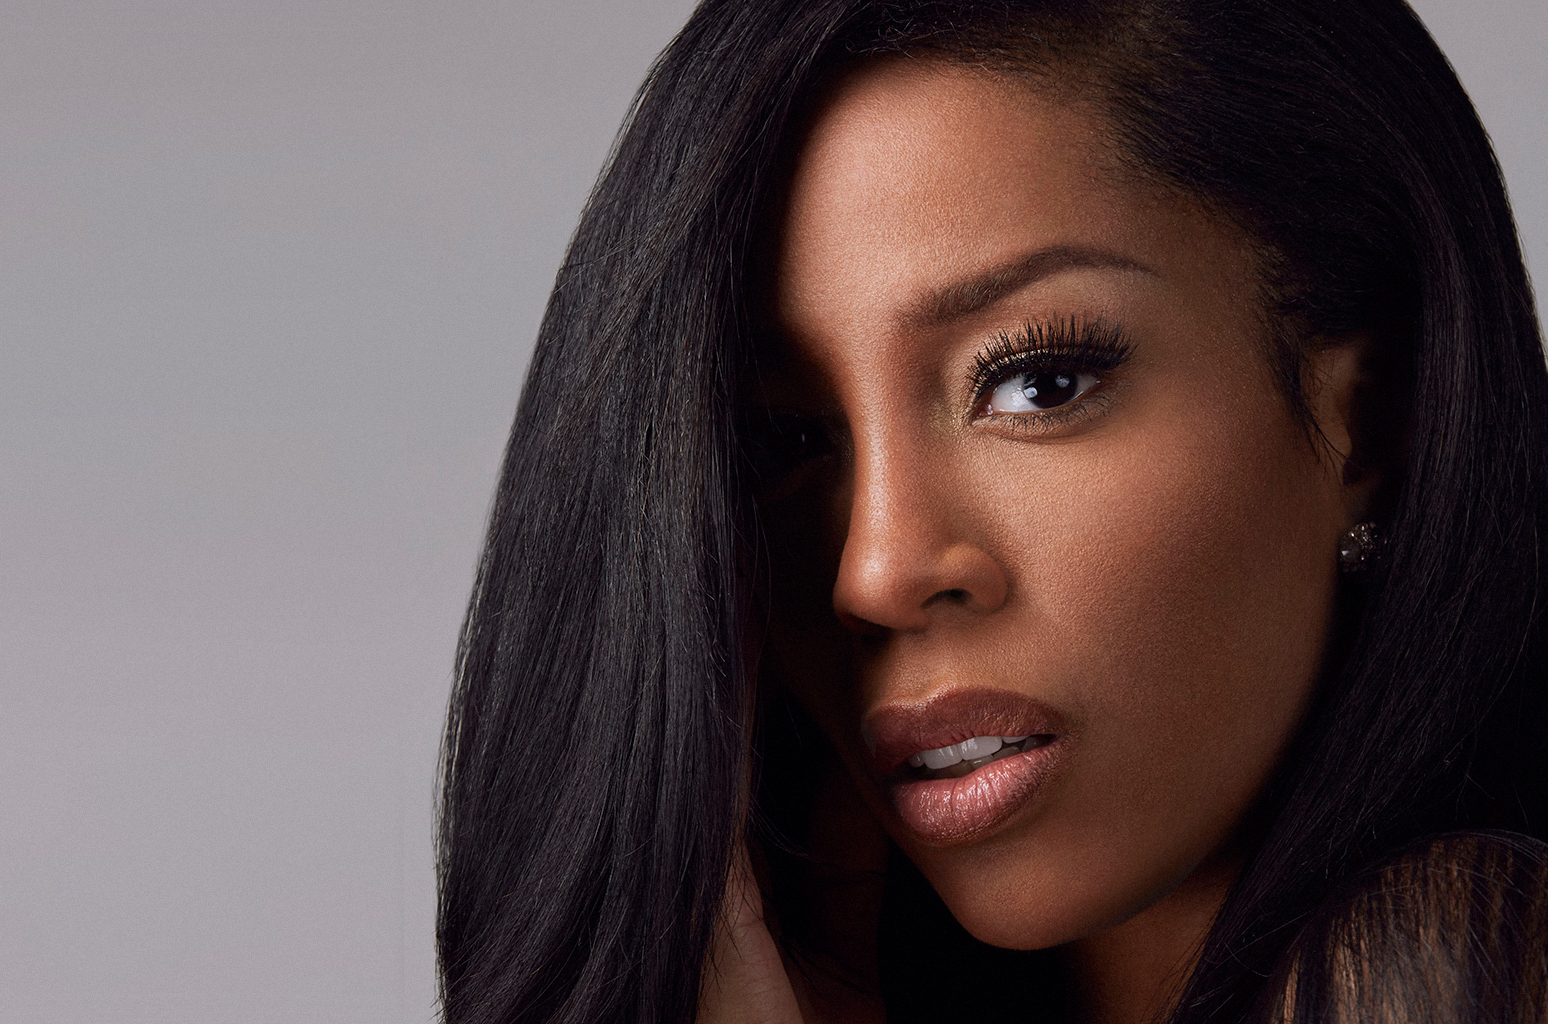 Singer K. Michelle Has Special Plans For Her Record Label ... K Michelle